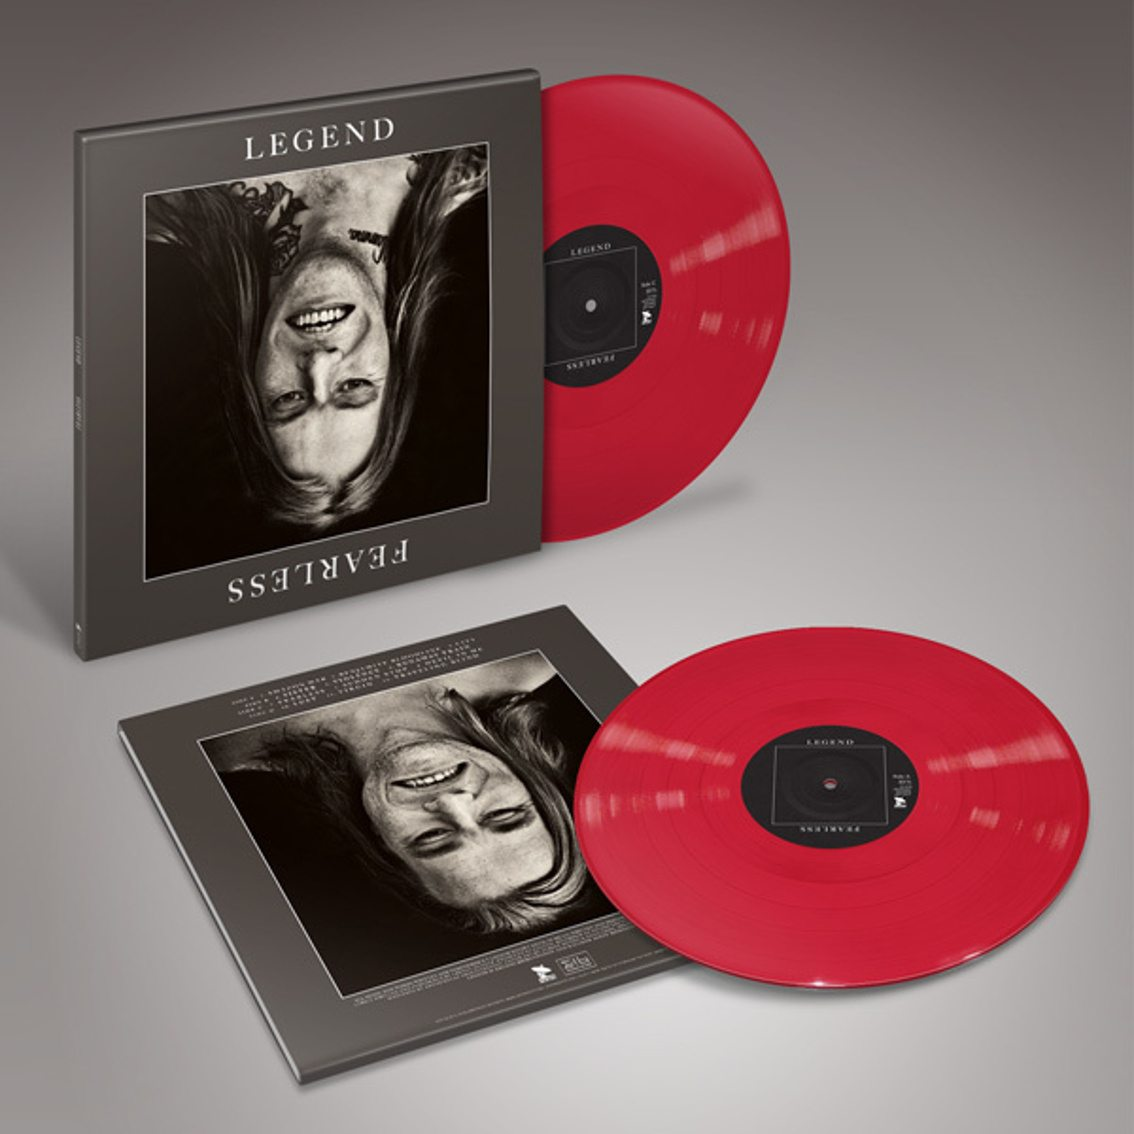 Legend issue remastered'Fearless' album on (red) vinyl